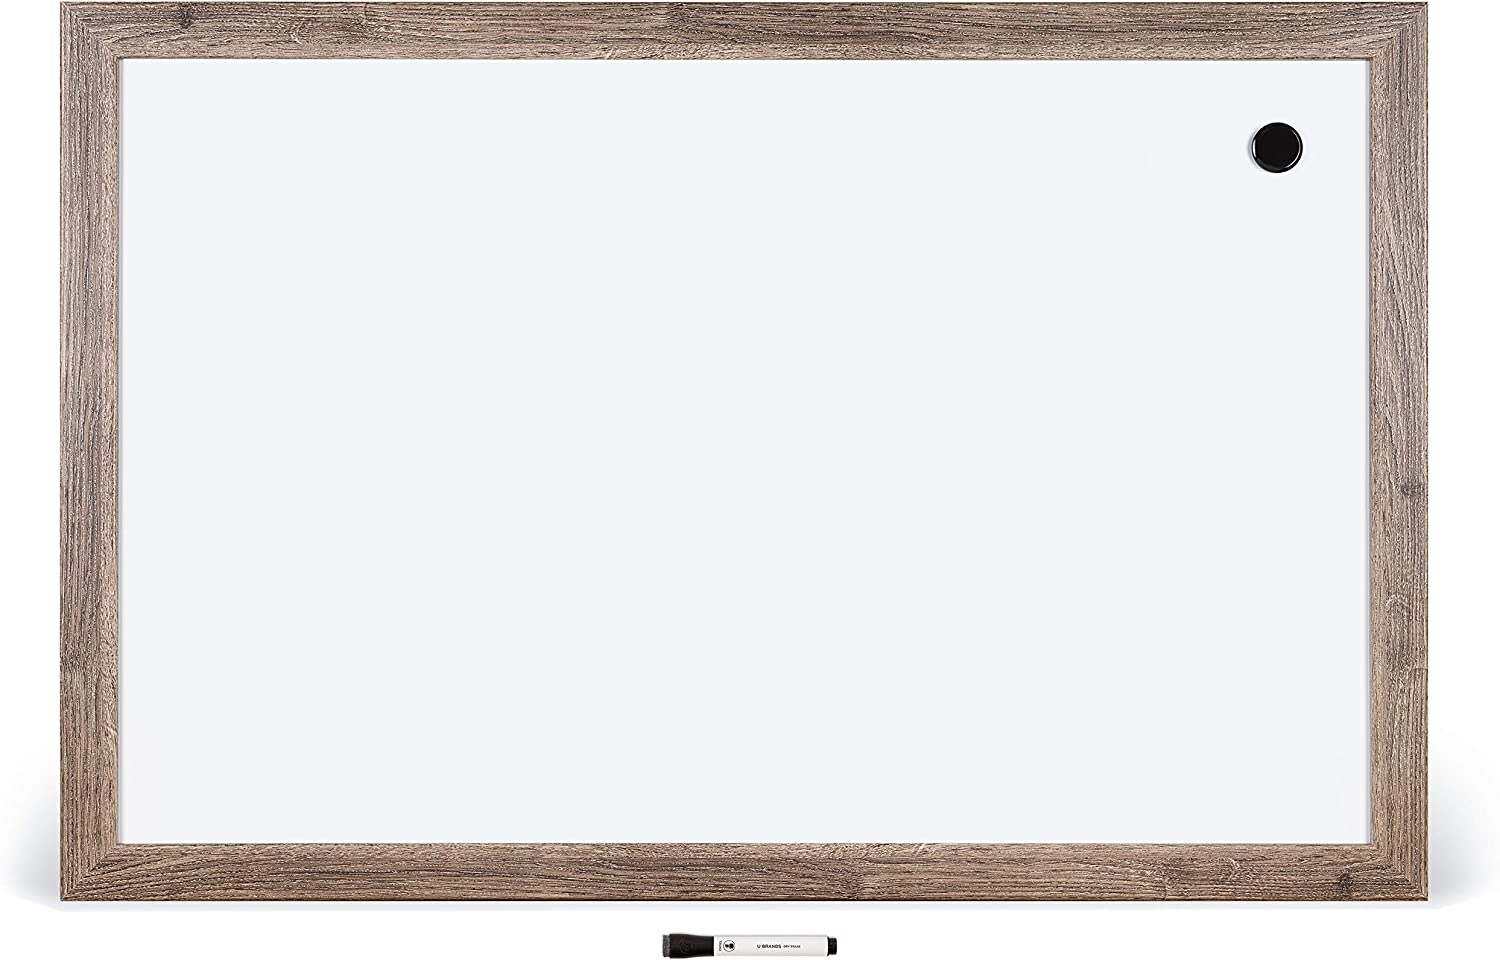 U Brands Magnetic Dry Super intense SALE Erase Board 23 Inches Wood F Rustic x 35 Limited time for free shipping